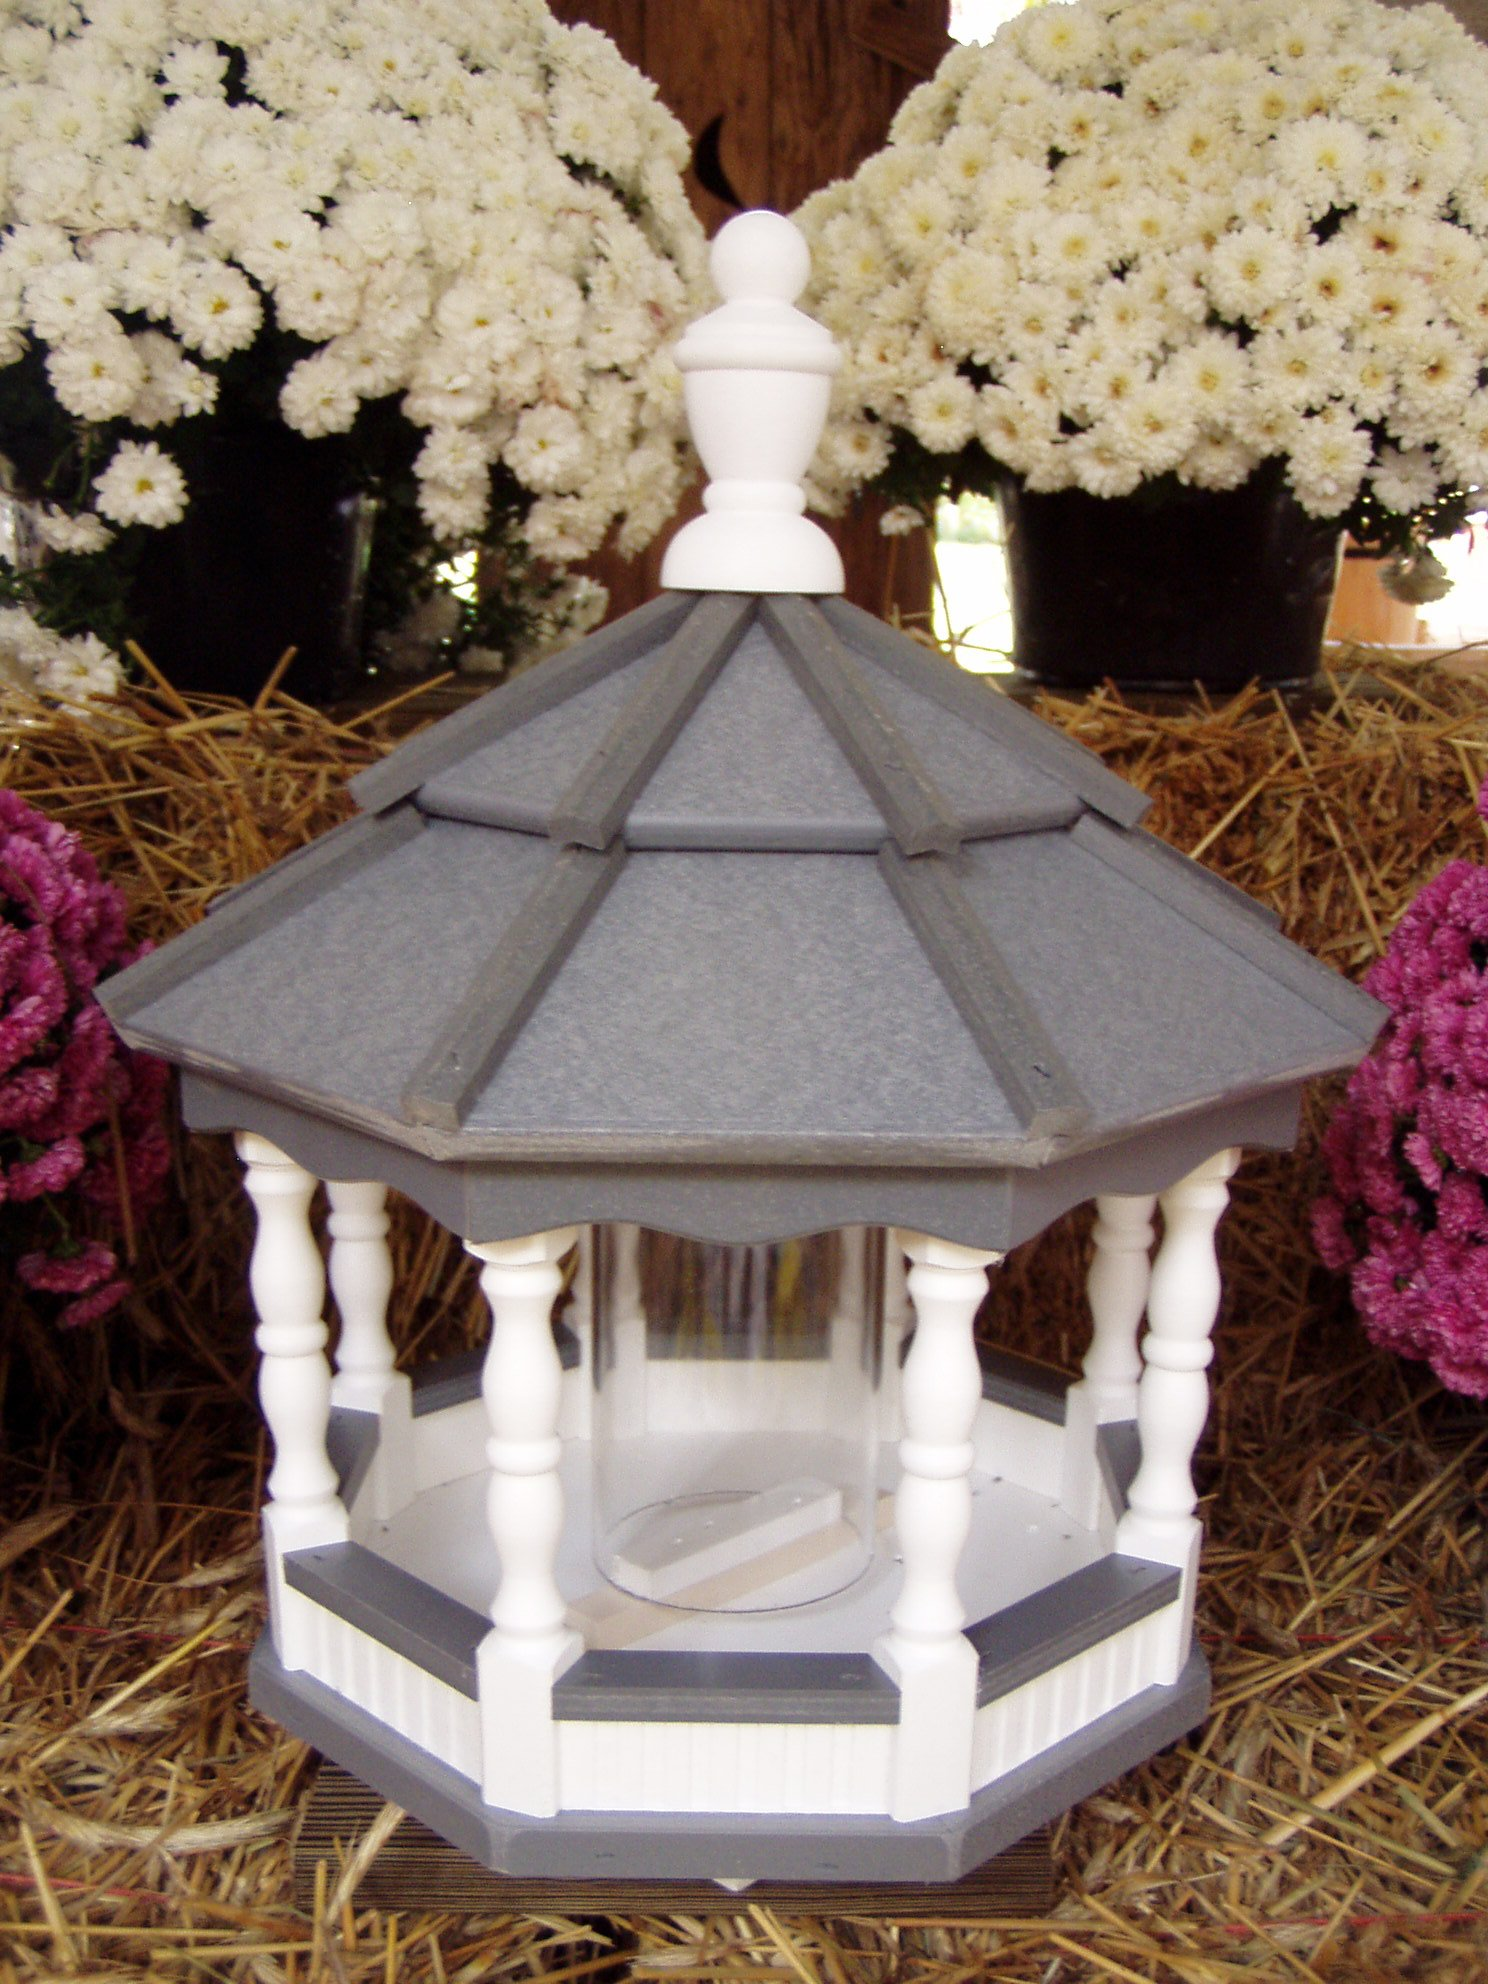 Vinyl Spindle Poly Bird Feeder Amish Gazebo Handcrafted Homemade White / Gray Medium by Amish Crafted